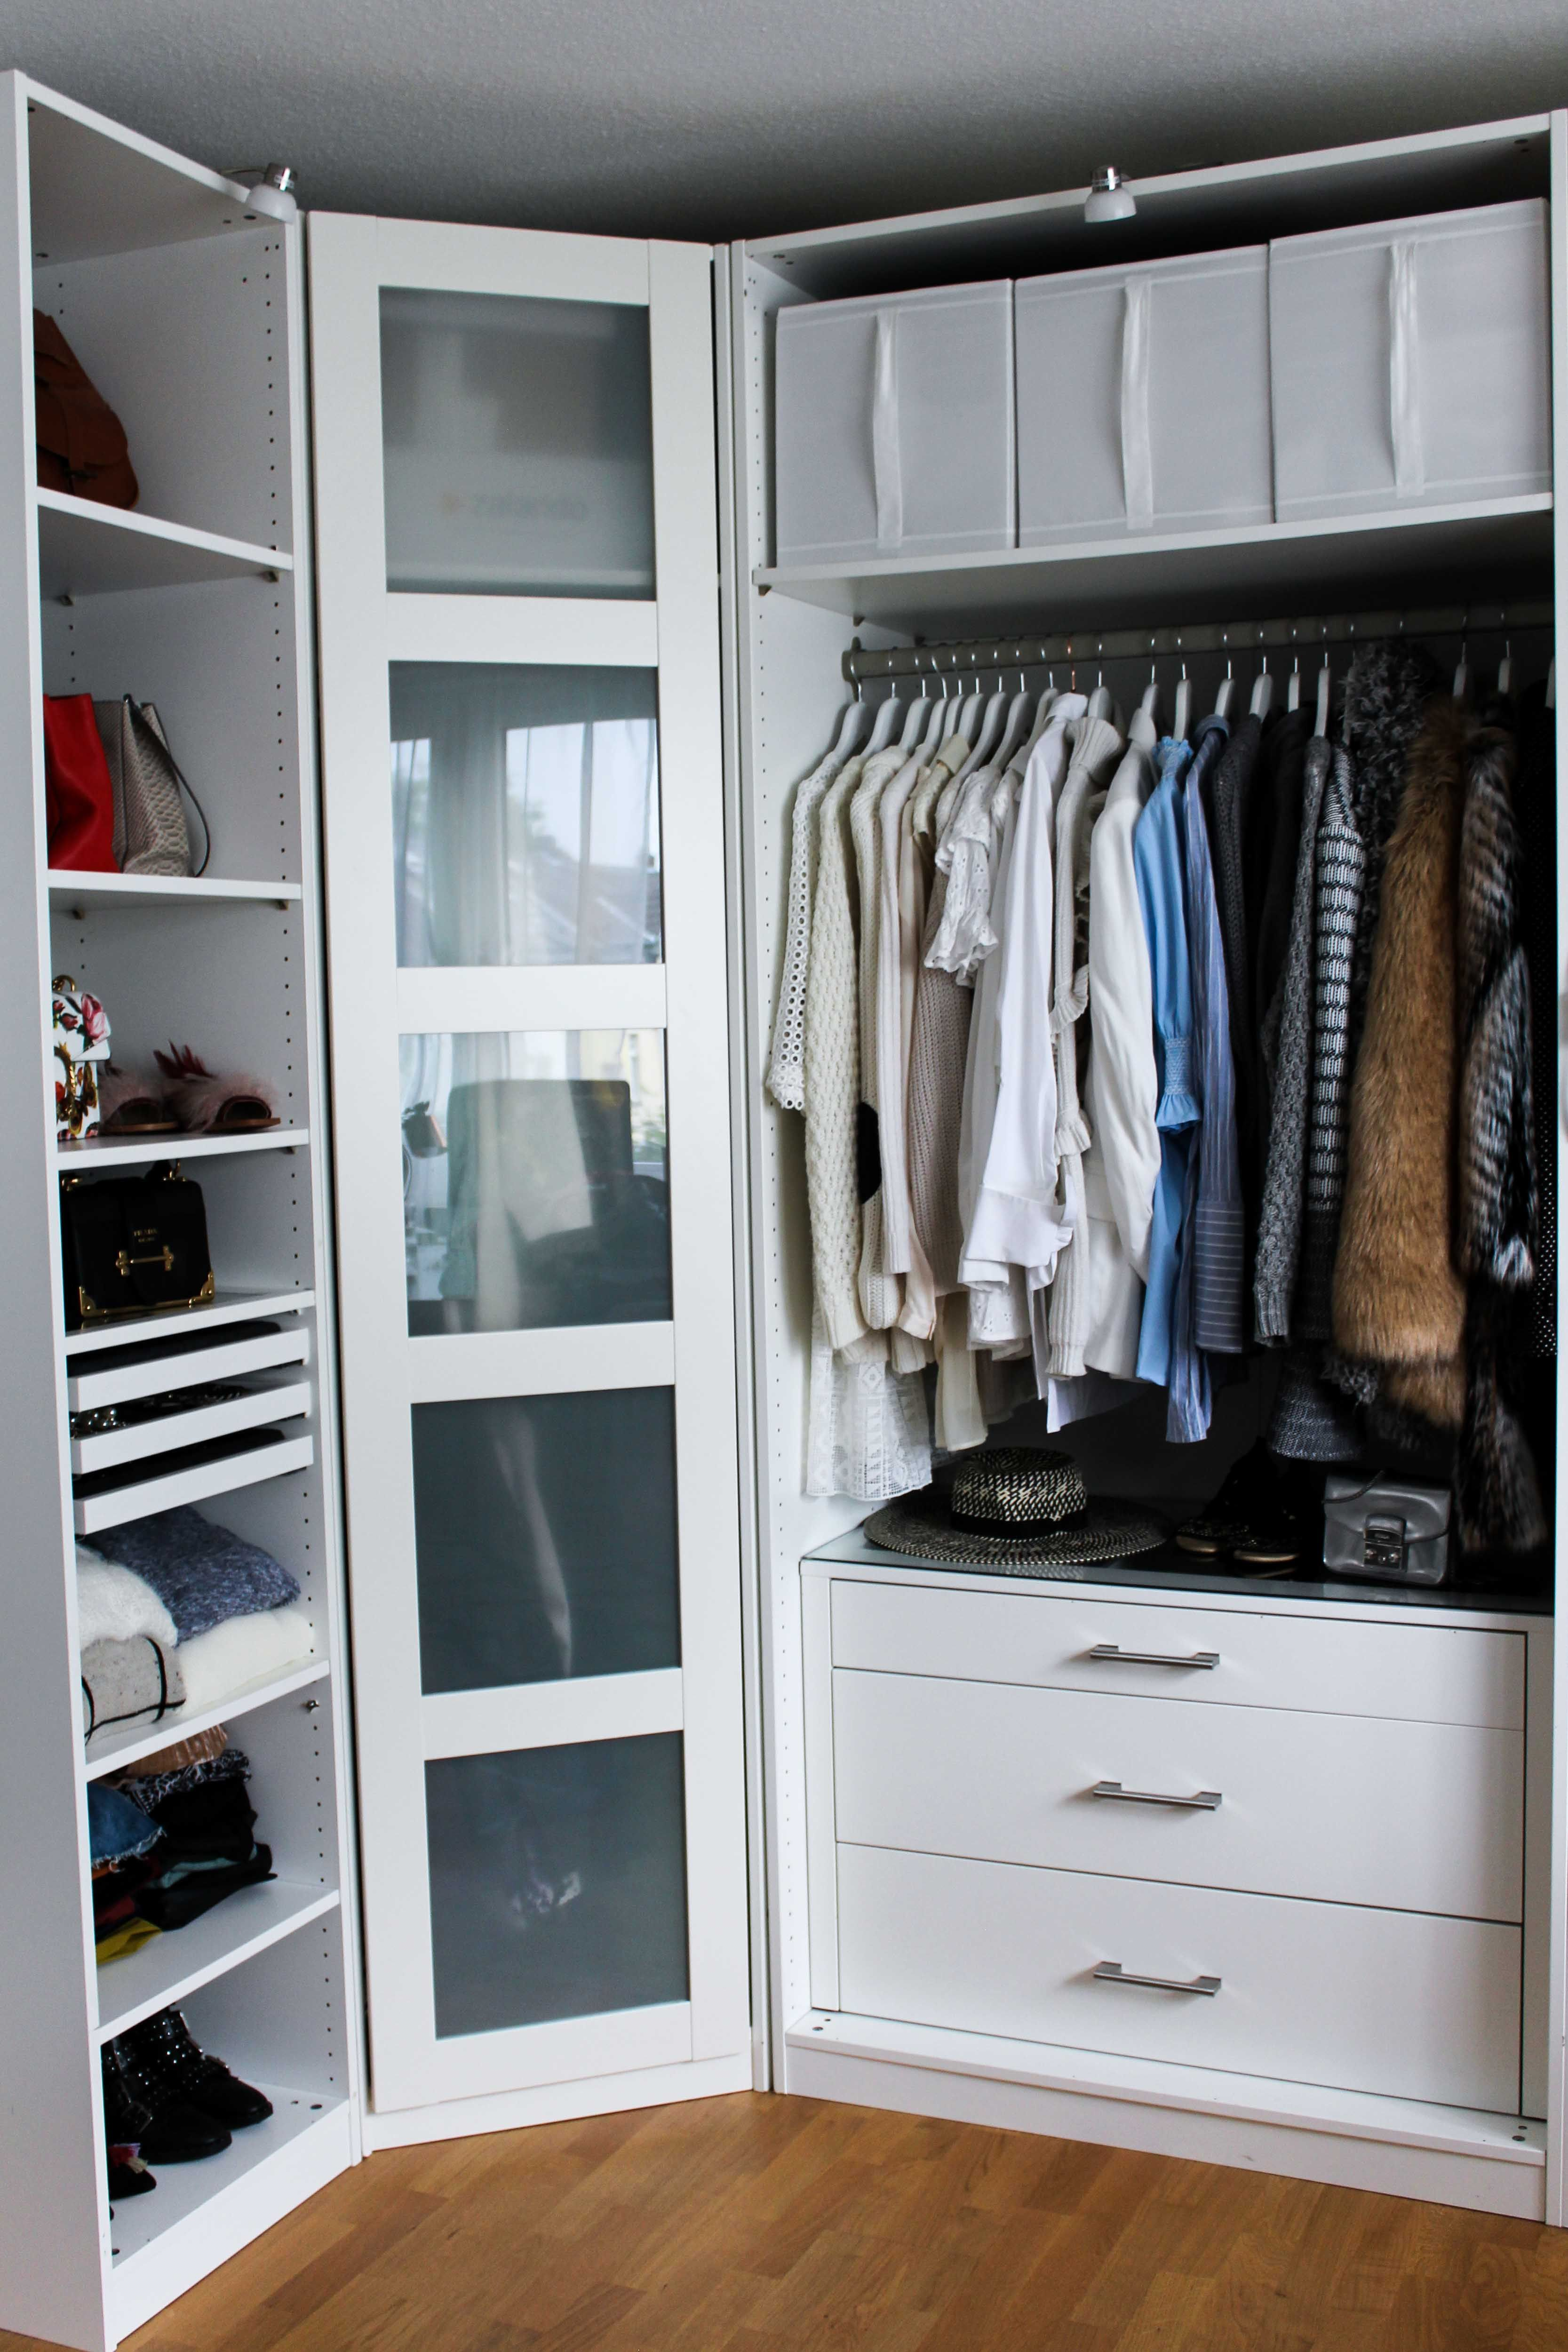 mein ankleidezimmer tipps f r den pax kleiderschrank closet pinterest garde robe deco. Black Bedroom Furniture Sets. Home Design Ideas